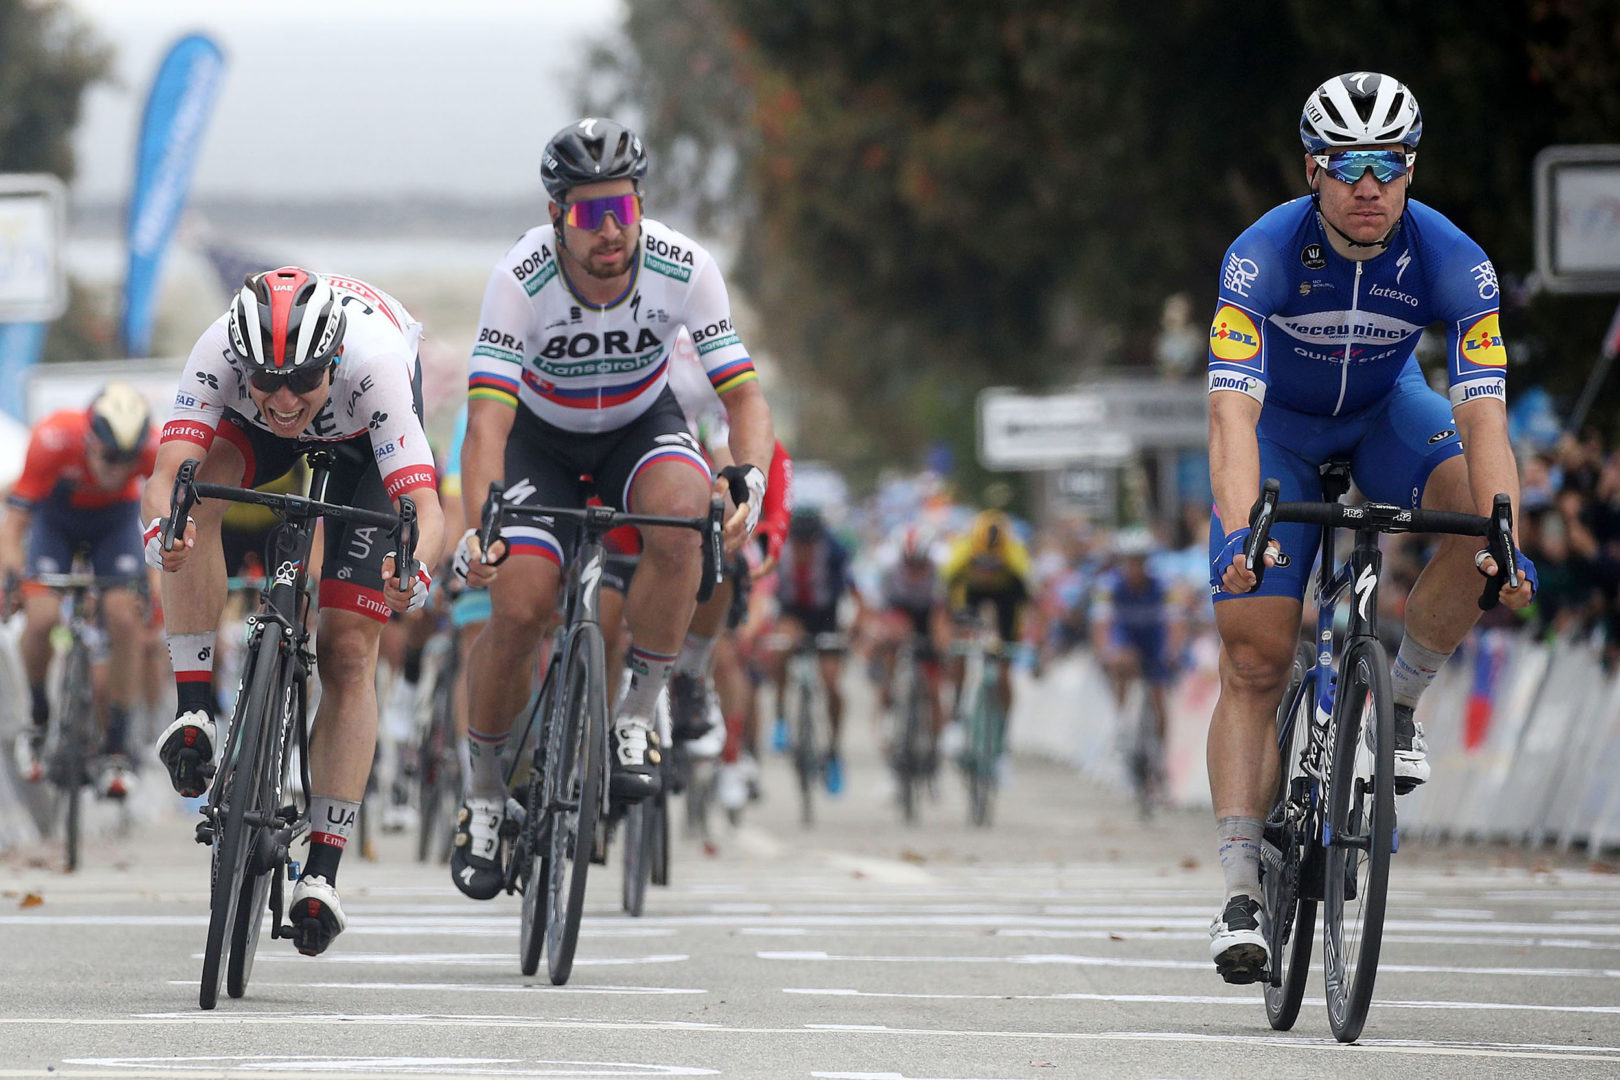 MORRO BAY, CALIFORNIA - MAY 15: Arrival / Sprint / Fabio Jakobsen of The Netherlands and Team Deceuninck - Quick-Step / Jasper Philipsen of Belgium and UAE - Team Emirates / Peter Sagan of Slovakia and Team Bora-Hansgrohe /  during the 14th Amgen Tour of California 2019, Stage 4 a 214,5km stage from Weathertech Raceway Laguna Seca to Morro Bay / #AmgenTOC / @AmgenTOC / on May 15, 2019 in Morro Bay, California. (Photo by Chris Graythen/Getty Images)